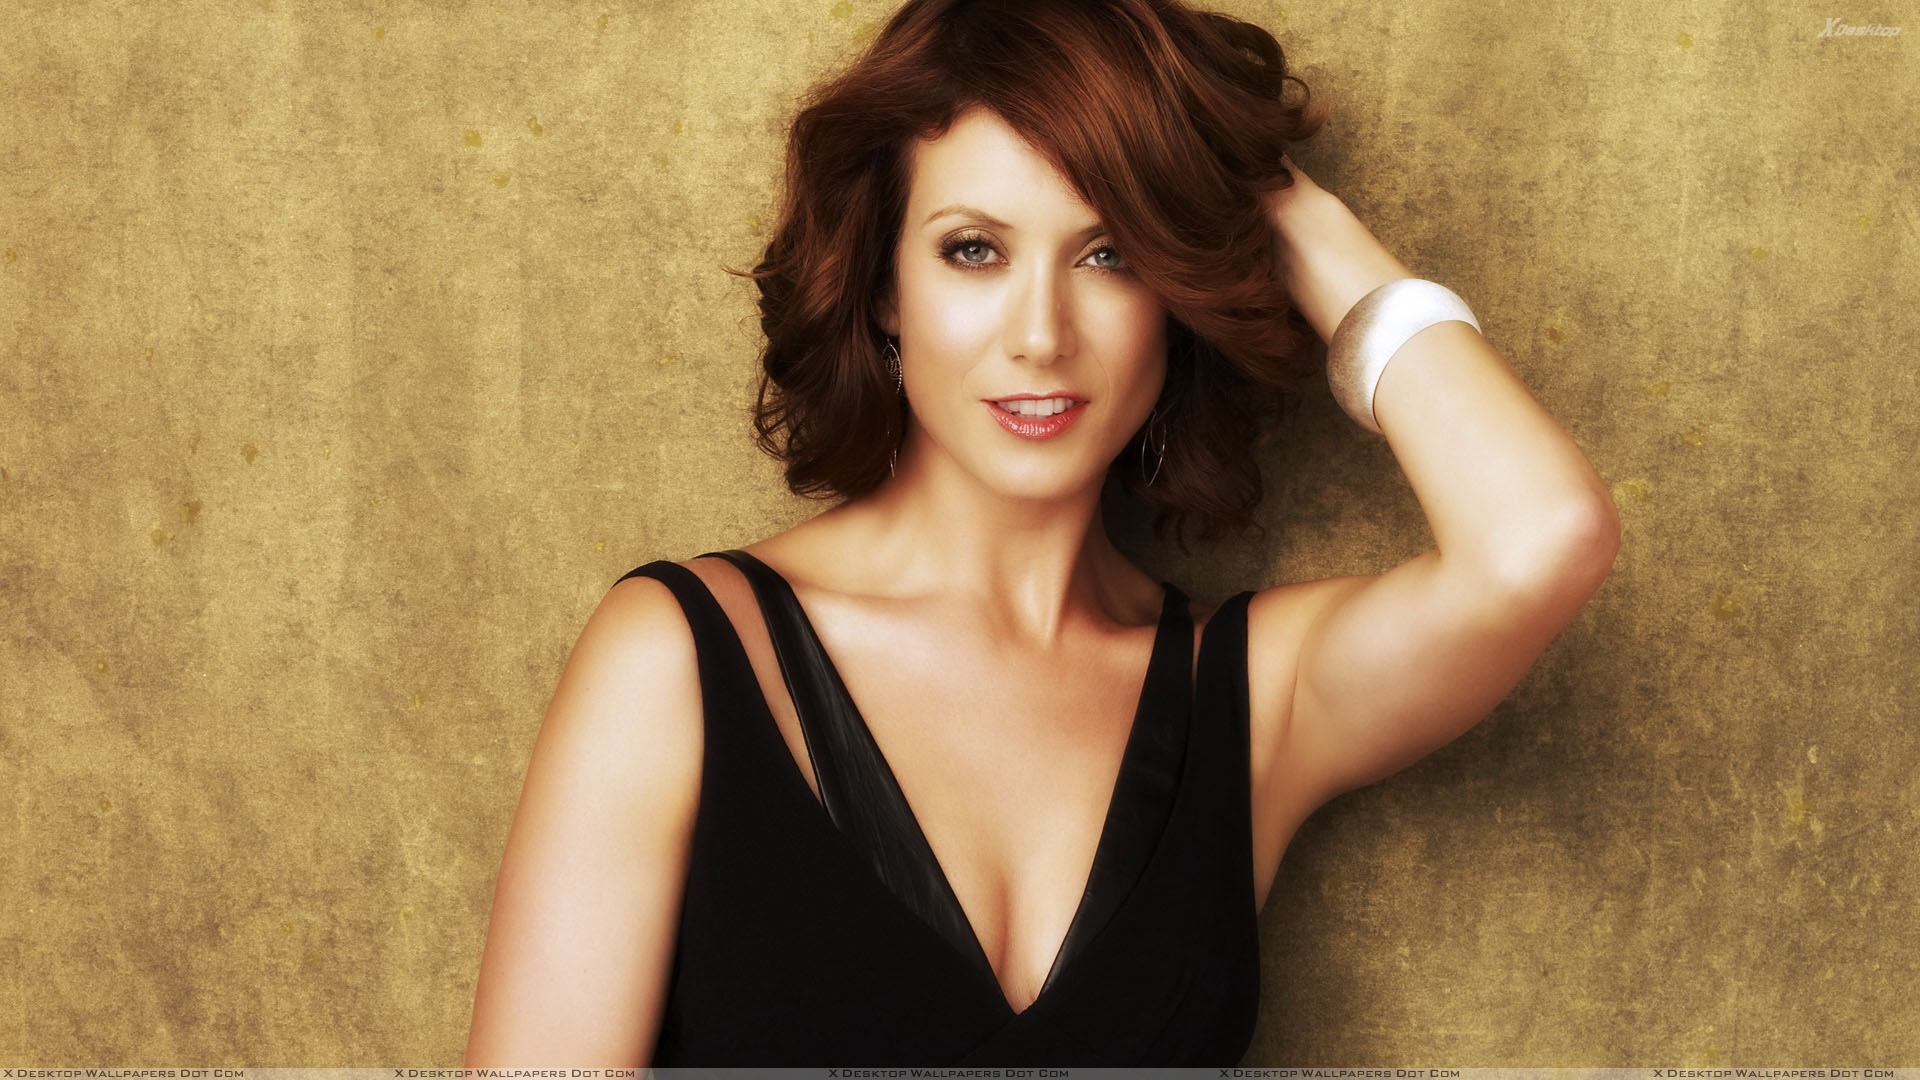 Kate Walsh Wallpapers, Photos & Images in HD